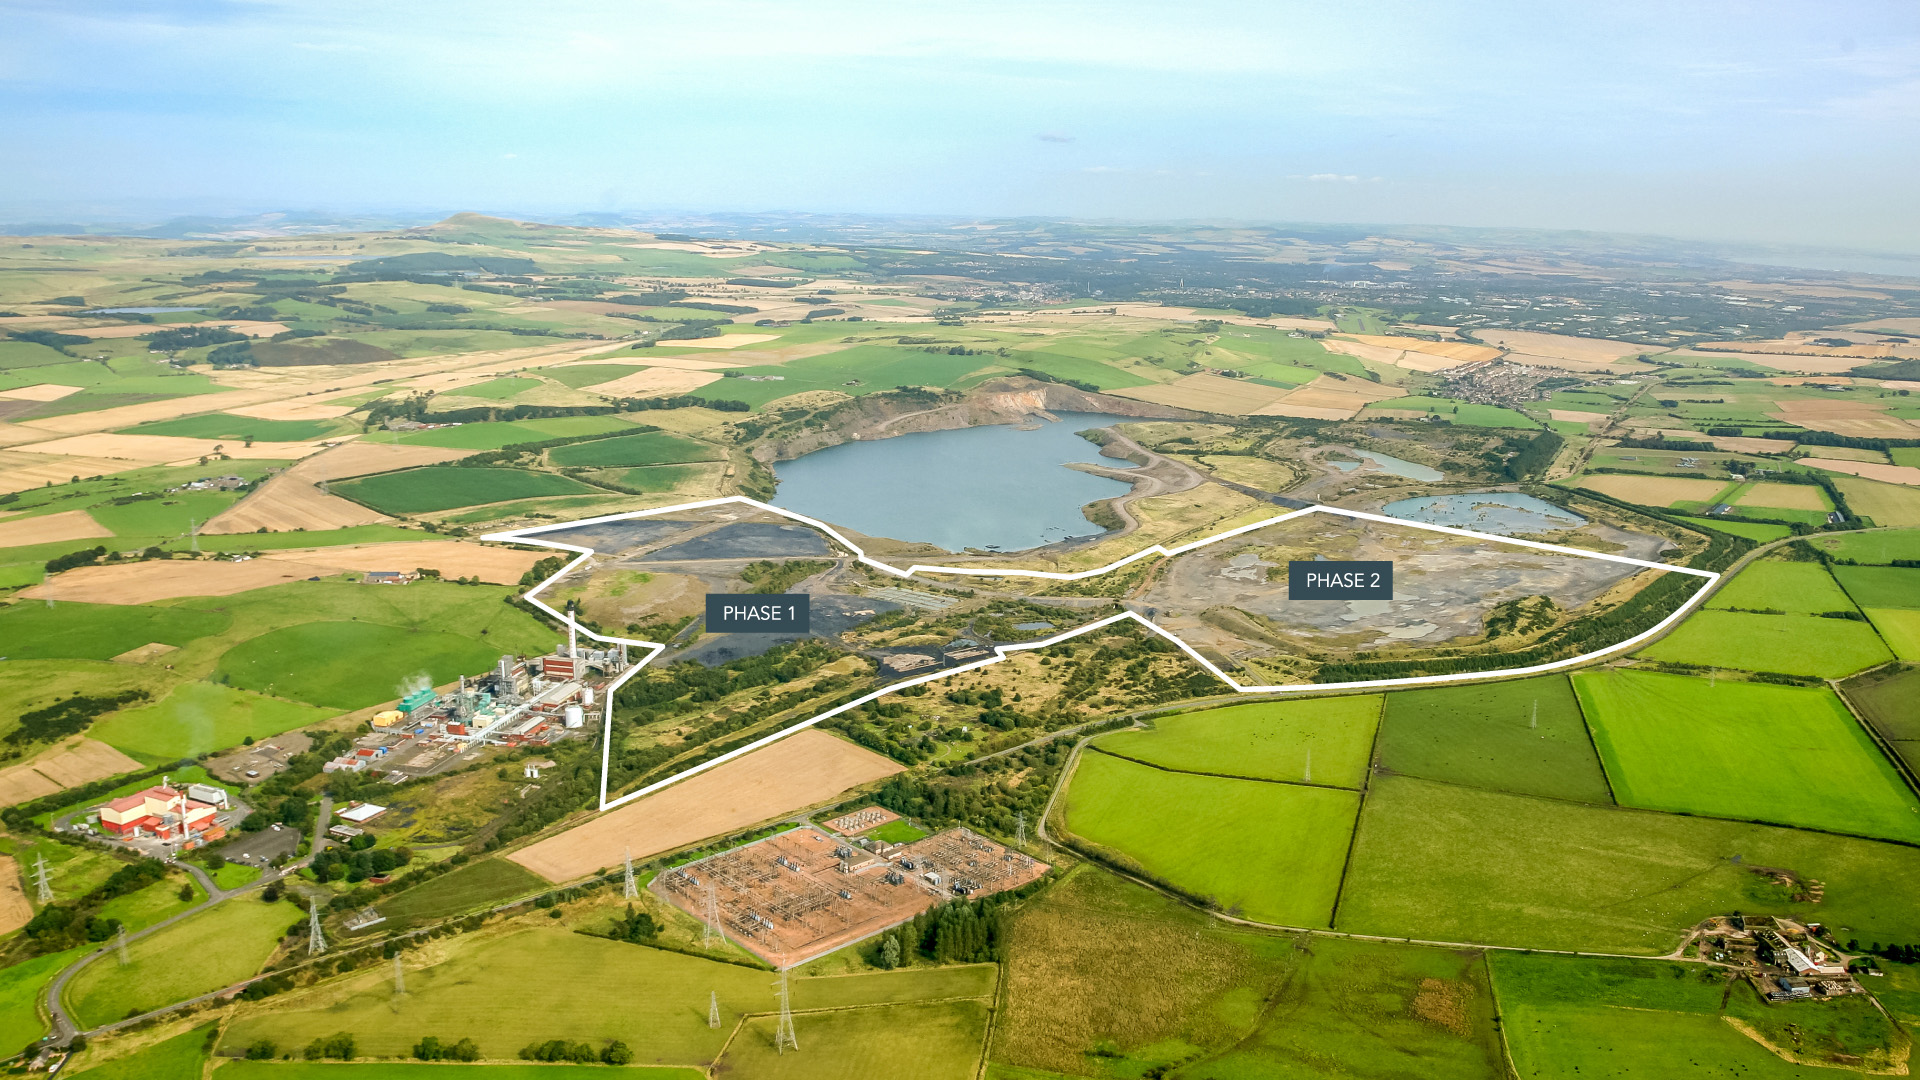 WESTFIELD FIFE AERIAL, KY5 0HJ, SCOTLAND - ONE OF THE LARGEST INDUSTRIAL REDEVELOPMENT OPPORTUNITIES IN SCOTLAND